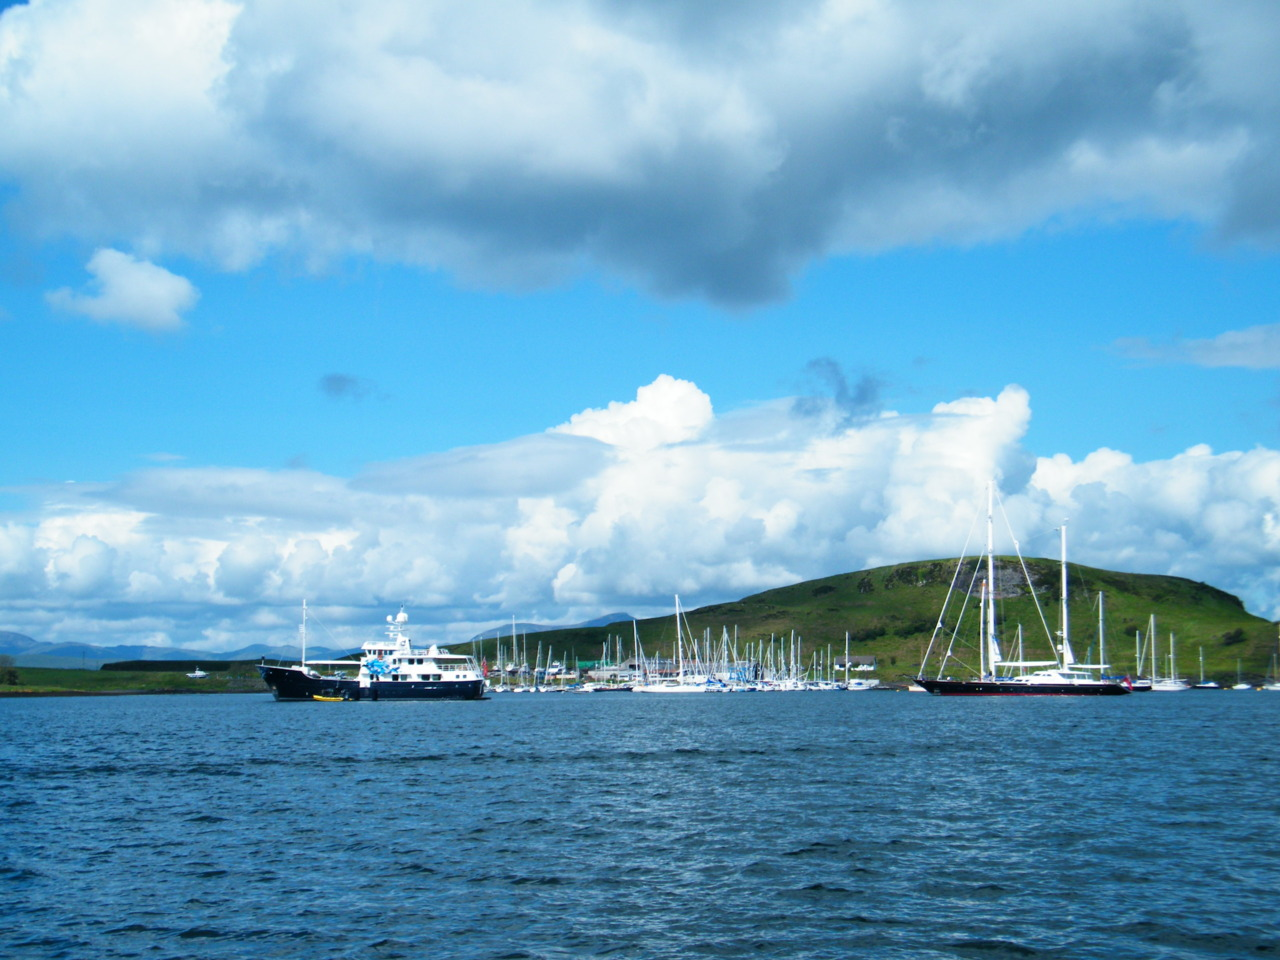 Super Yachts in Oban Bay